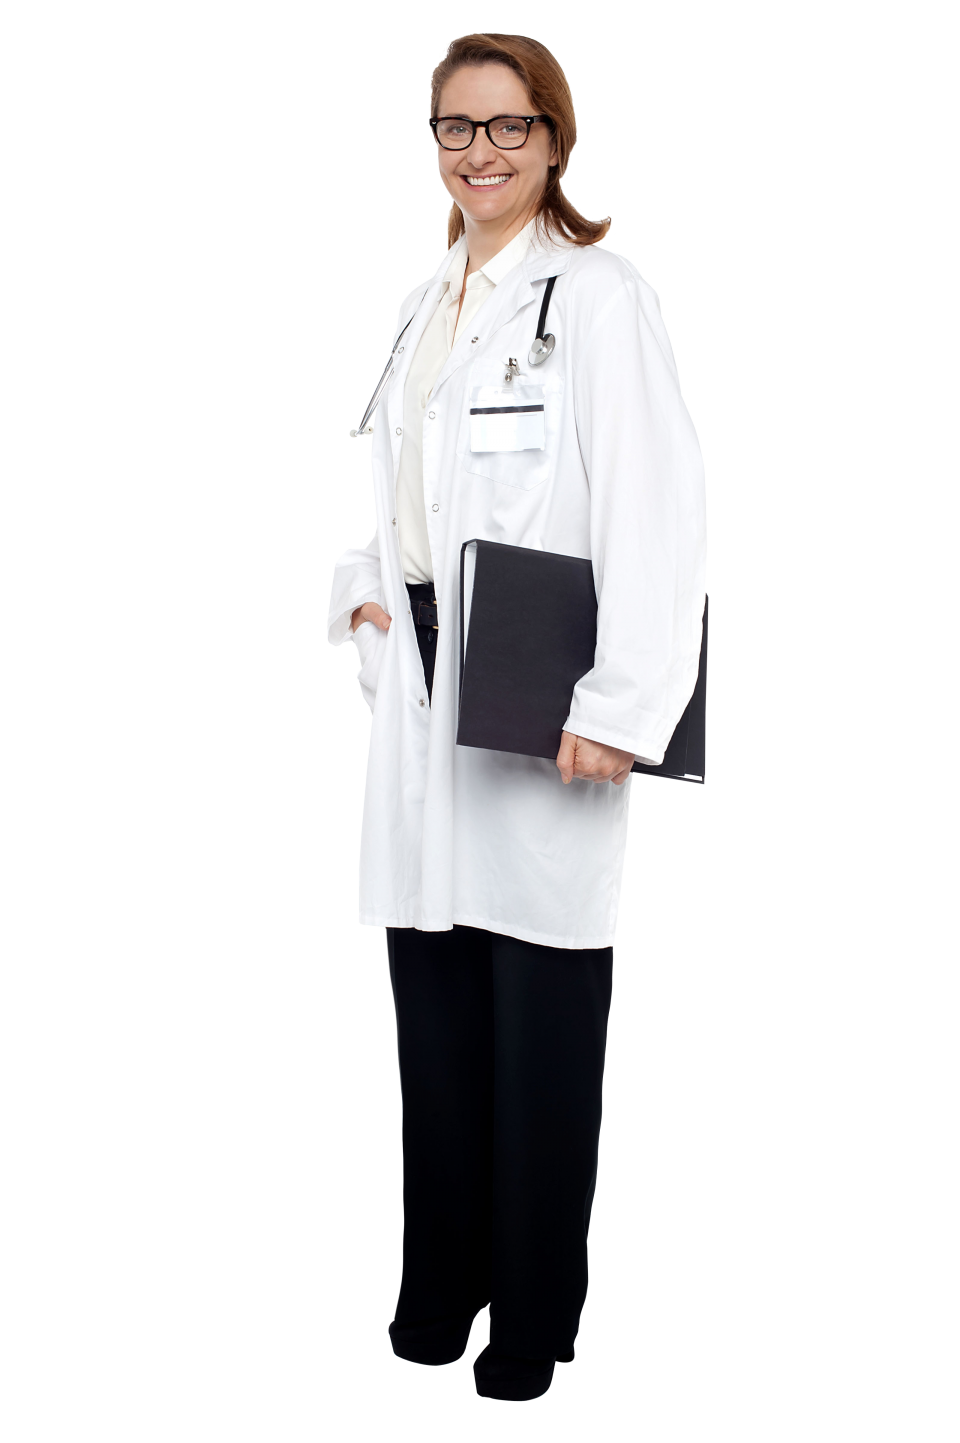 Female Doctor PNG Image